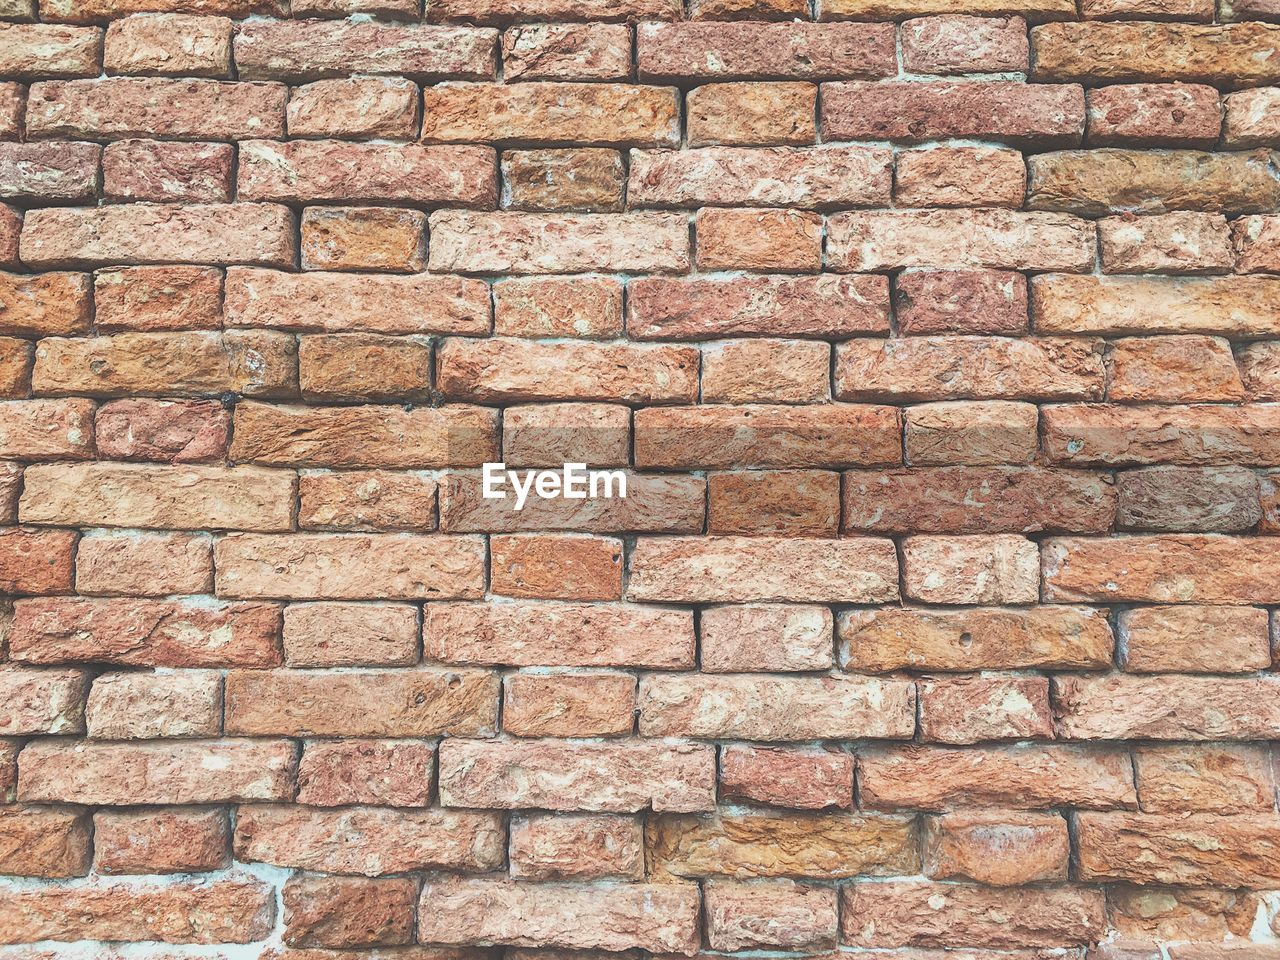 brick, backgrounds, brick wall, full frame, wall, pattern, textured, wall - building feature, no people, built structure, architecture, close-up, day, repetition, brown, rough, in a row, solid, red, outdoors, textured effect